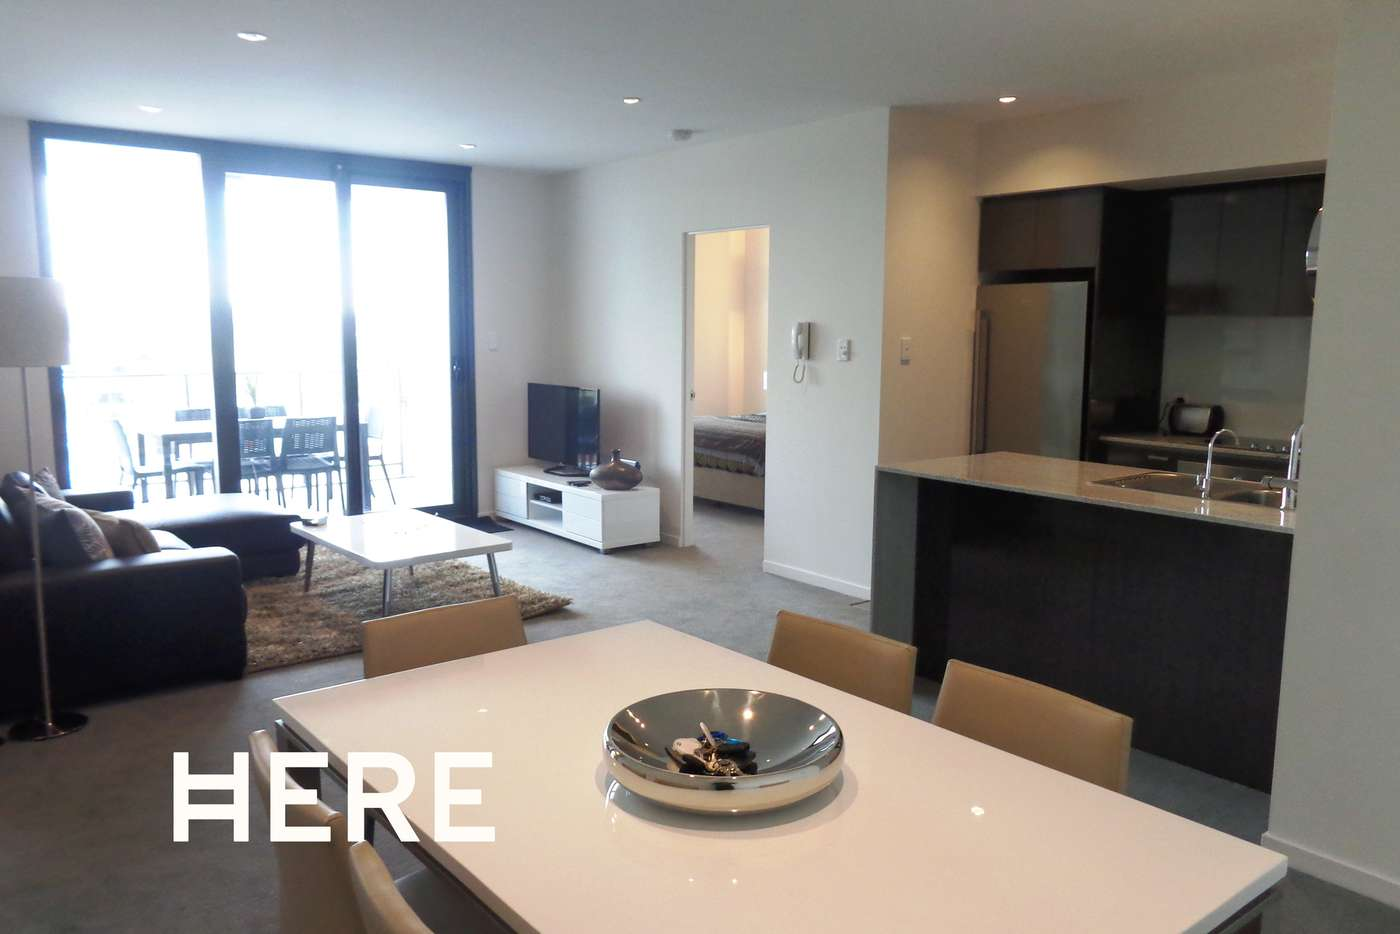 Main view of Homely apartment listing, 81/262 Lord Street, Perth WA 6000